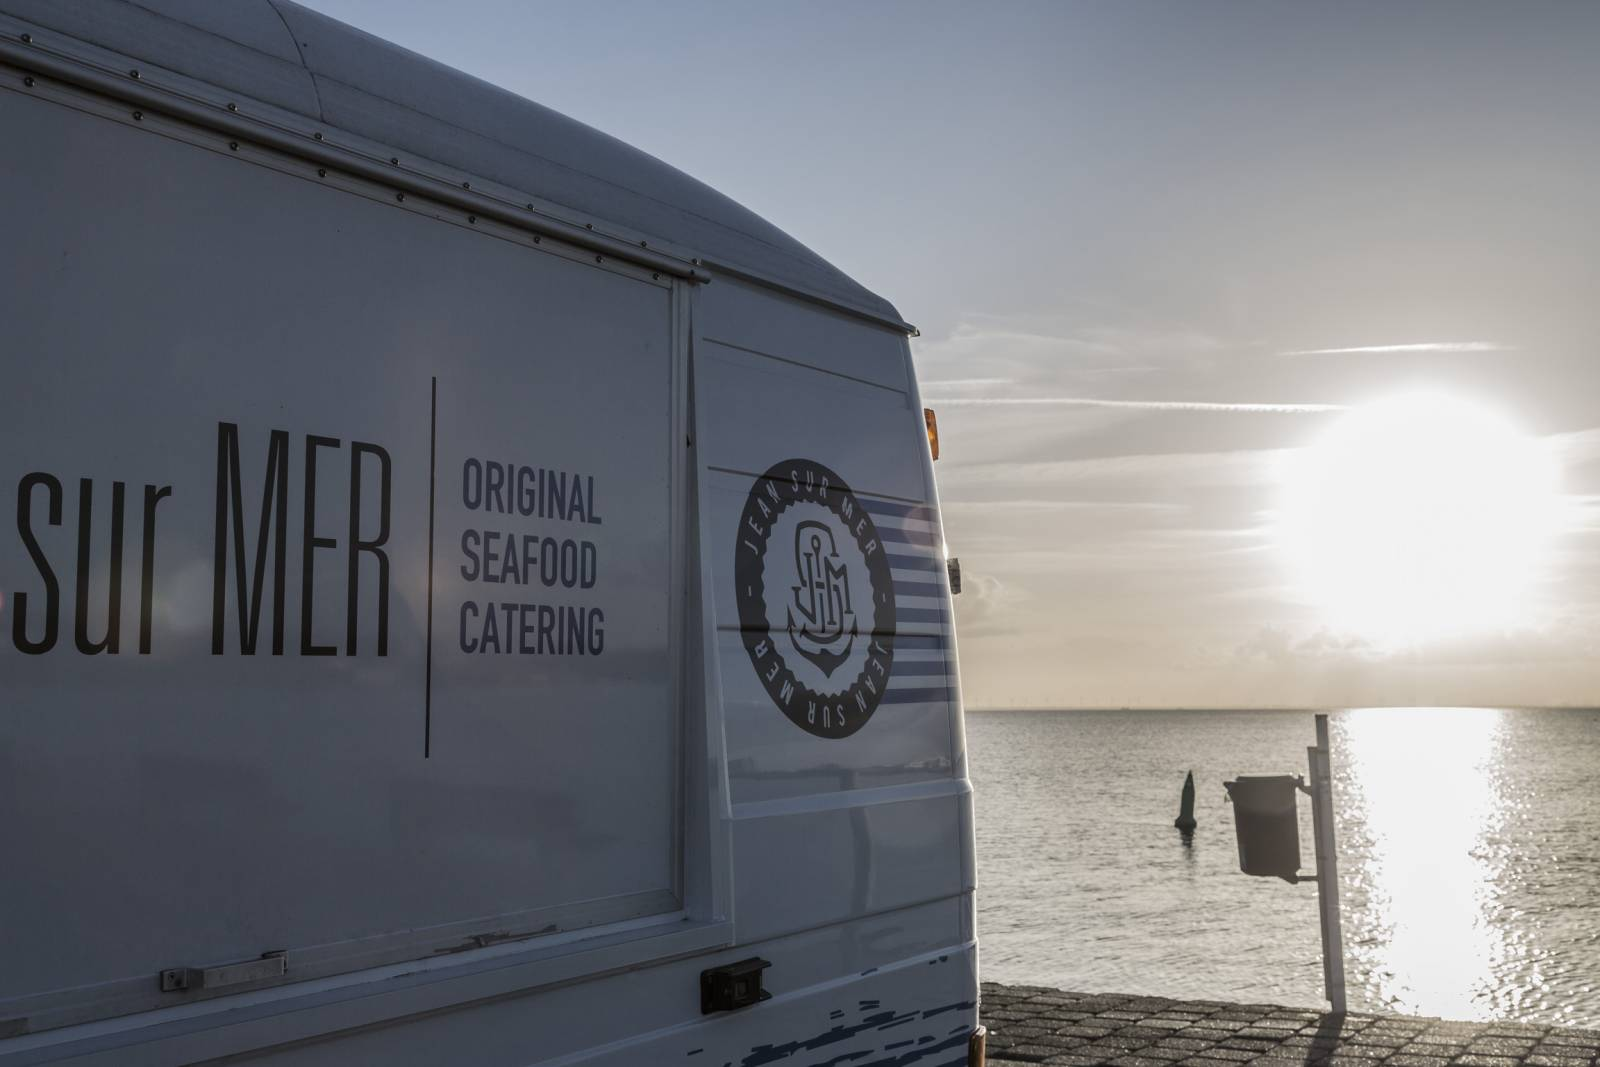 Koosjere Keuken Jean Sur Mer Food Trucks Cateraars And Food Trucks